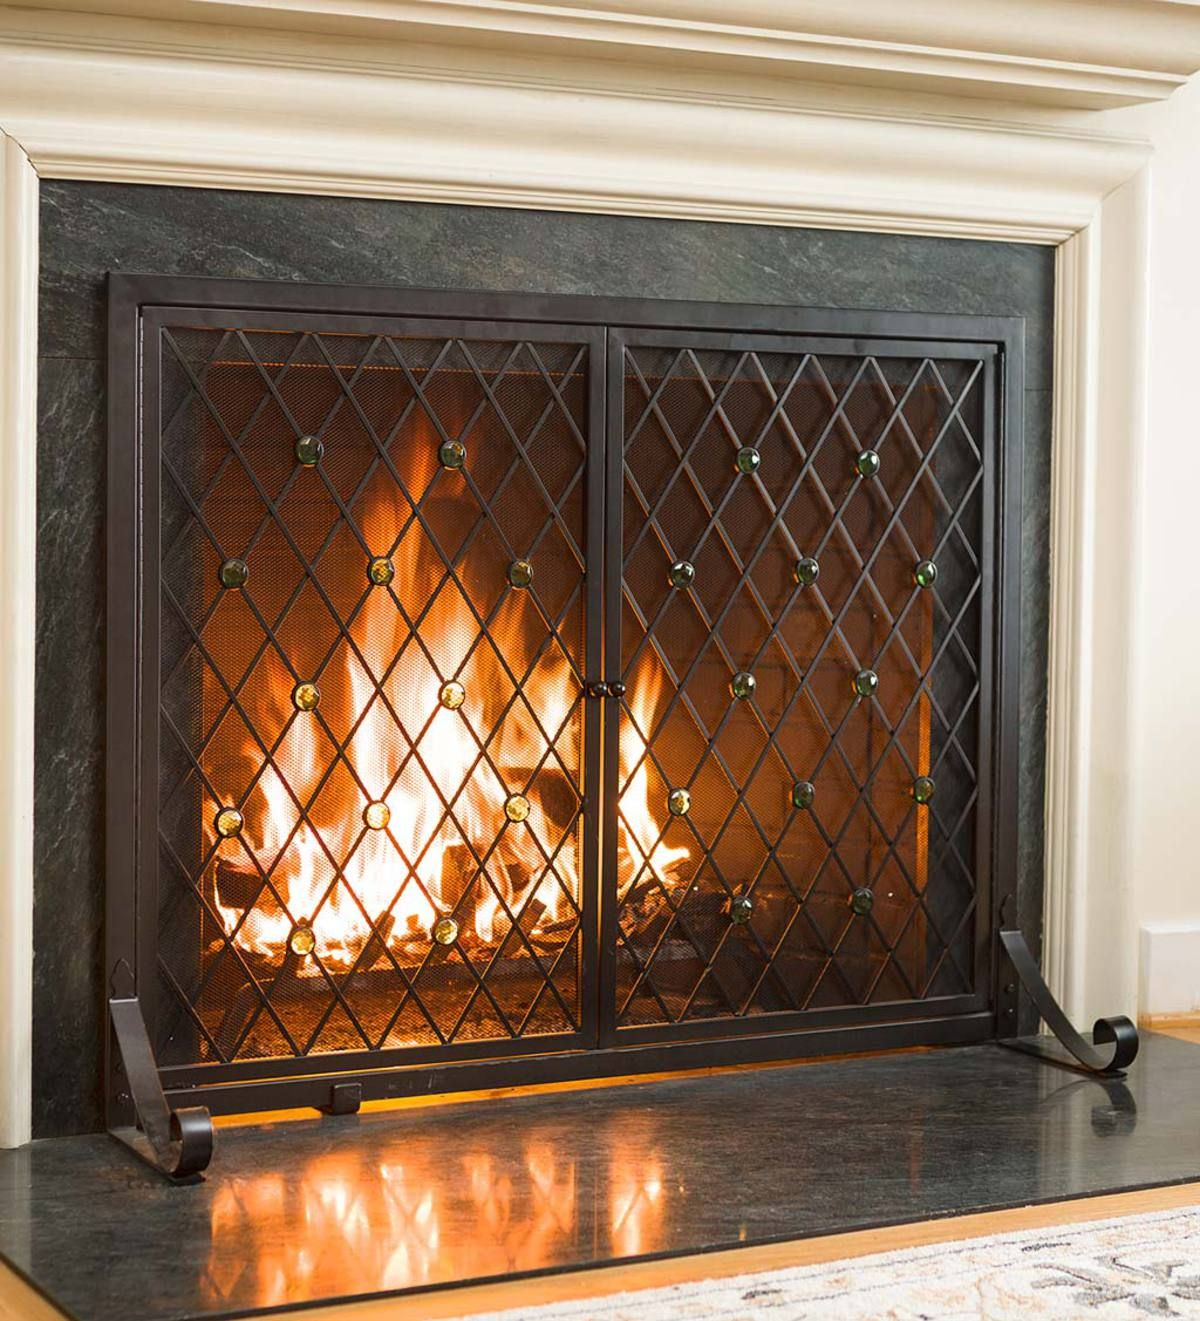 Jeweled Fireplace Screen With Two Doors All Fireplace Screens Fireplace Screens Fireplace Hearth P Glass Fireplace Screen Fireplace Screens Fireplace